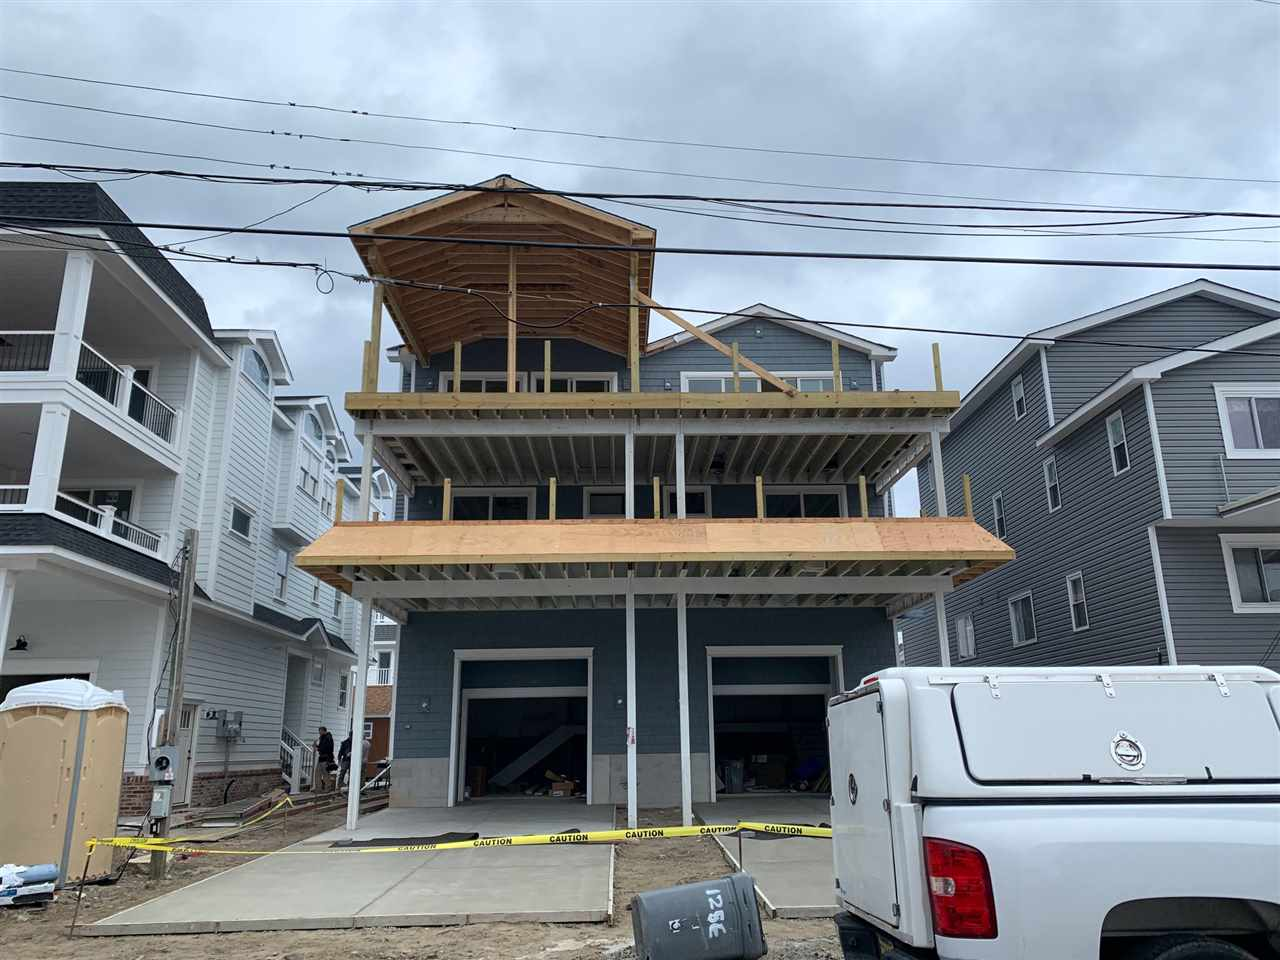 25, West Unit 54th Street, Sea Isle City